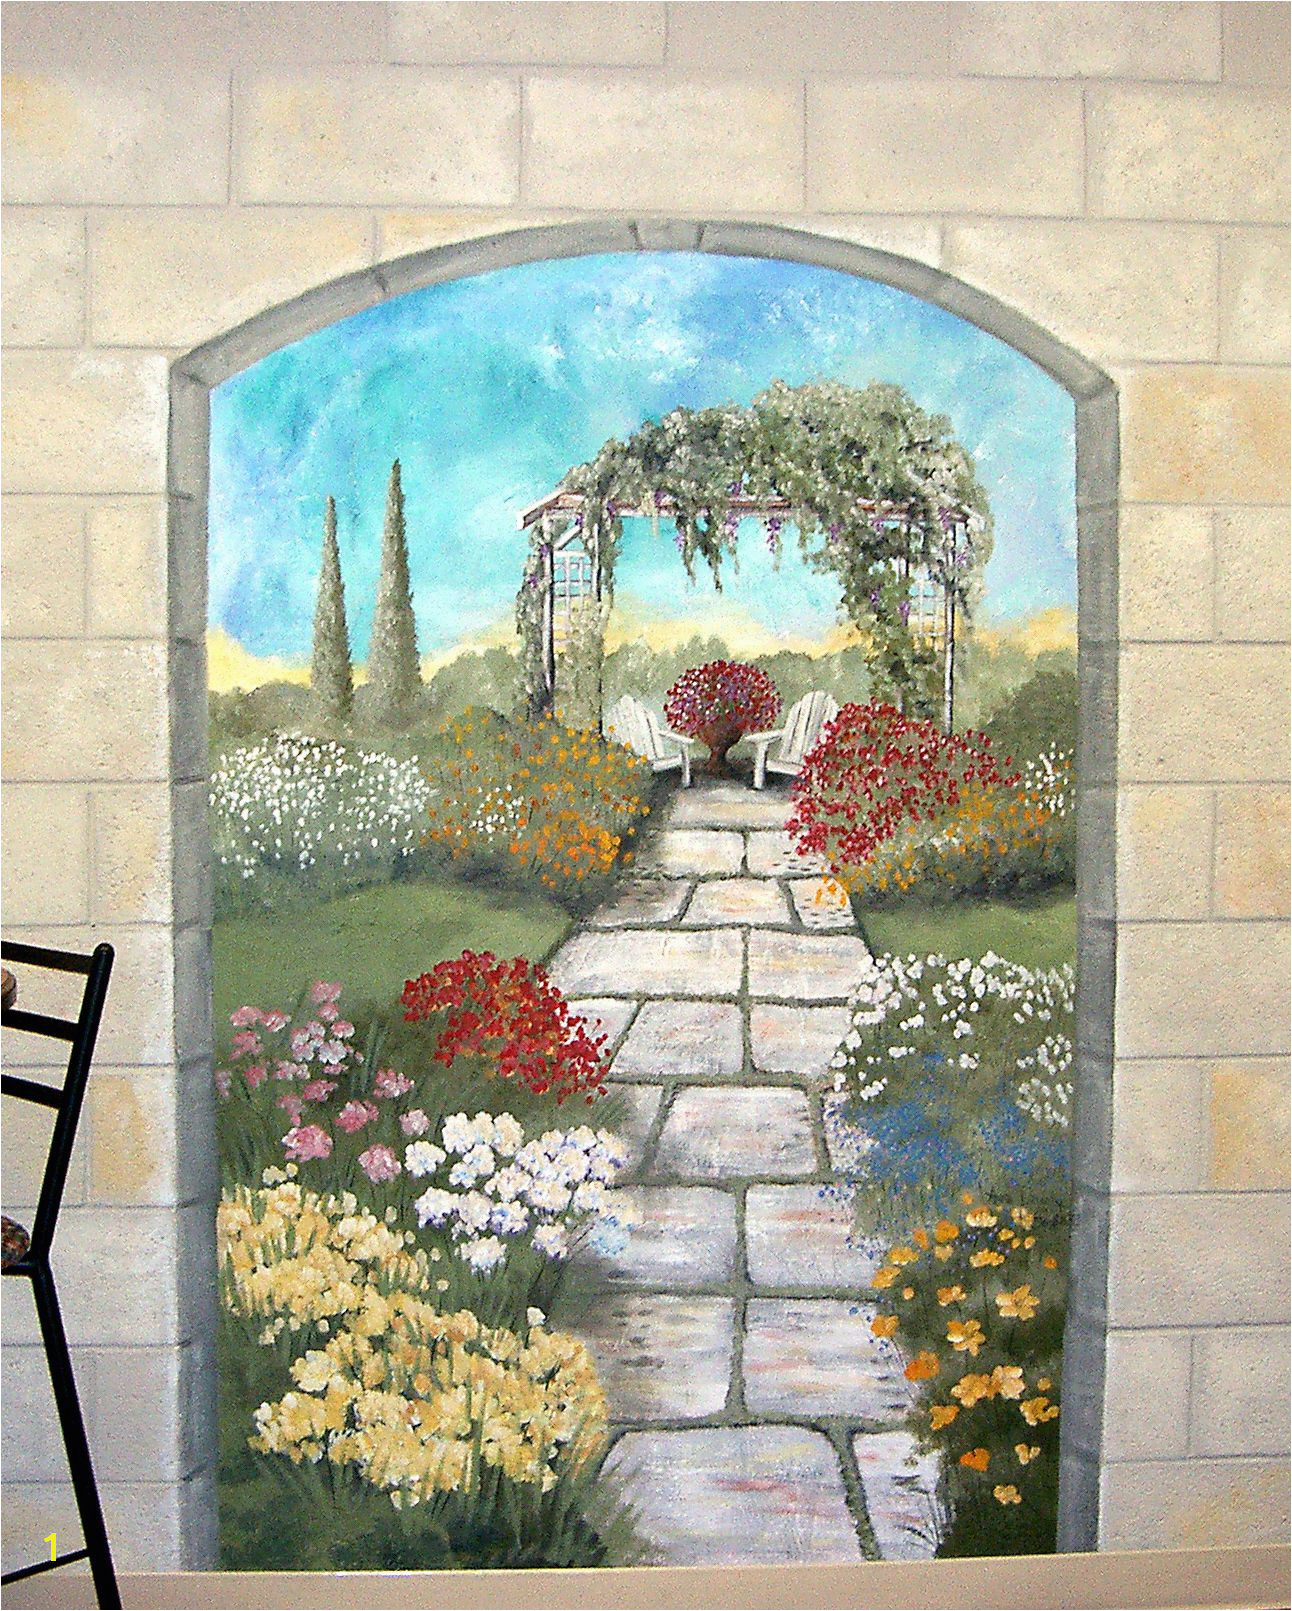 Outdoor Mural Paint Garden Mural On A Cement Block Wall Colorful Flower Garden Mural